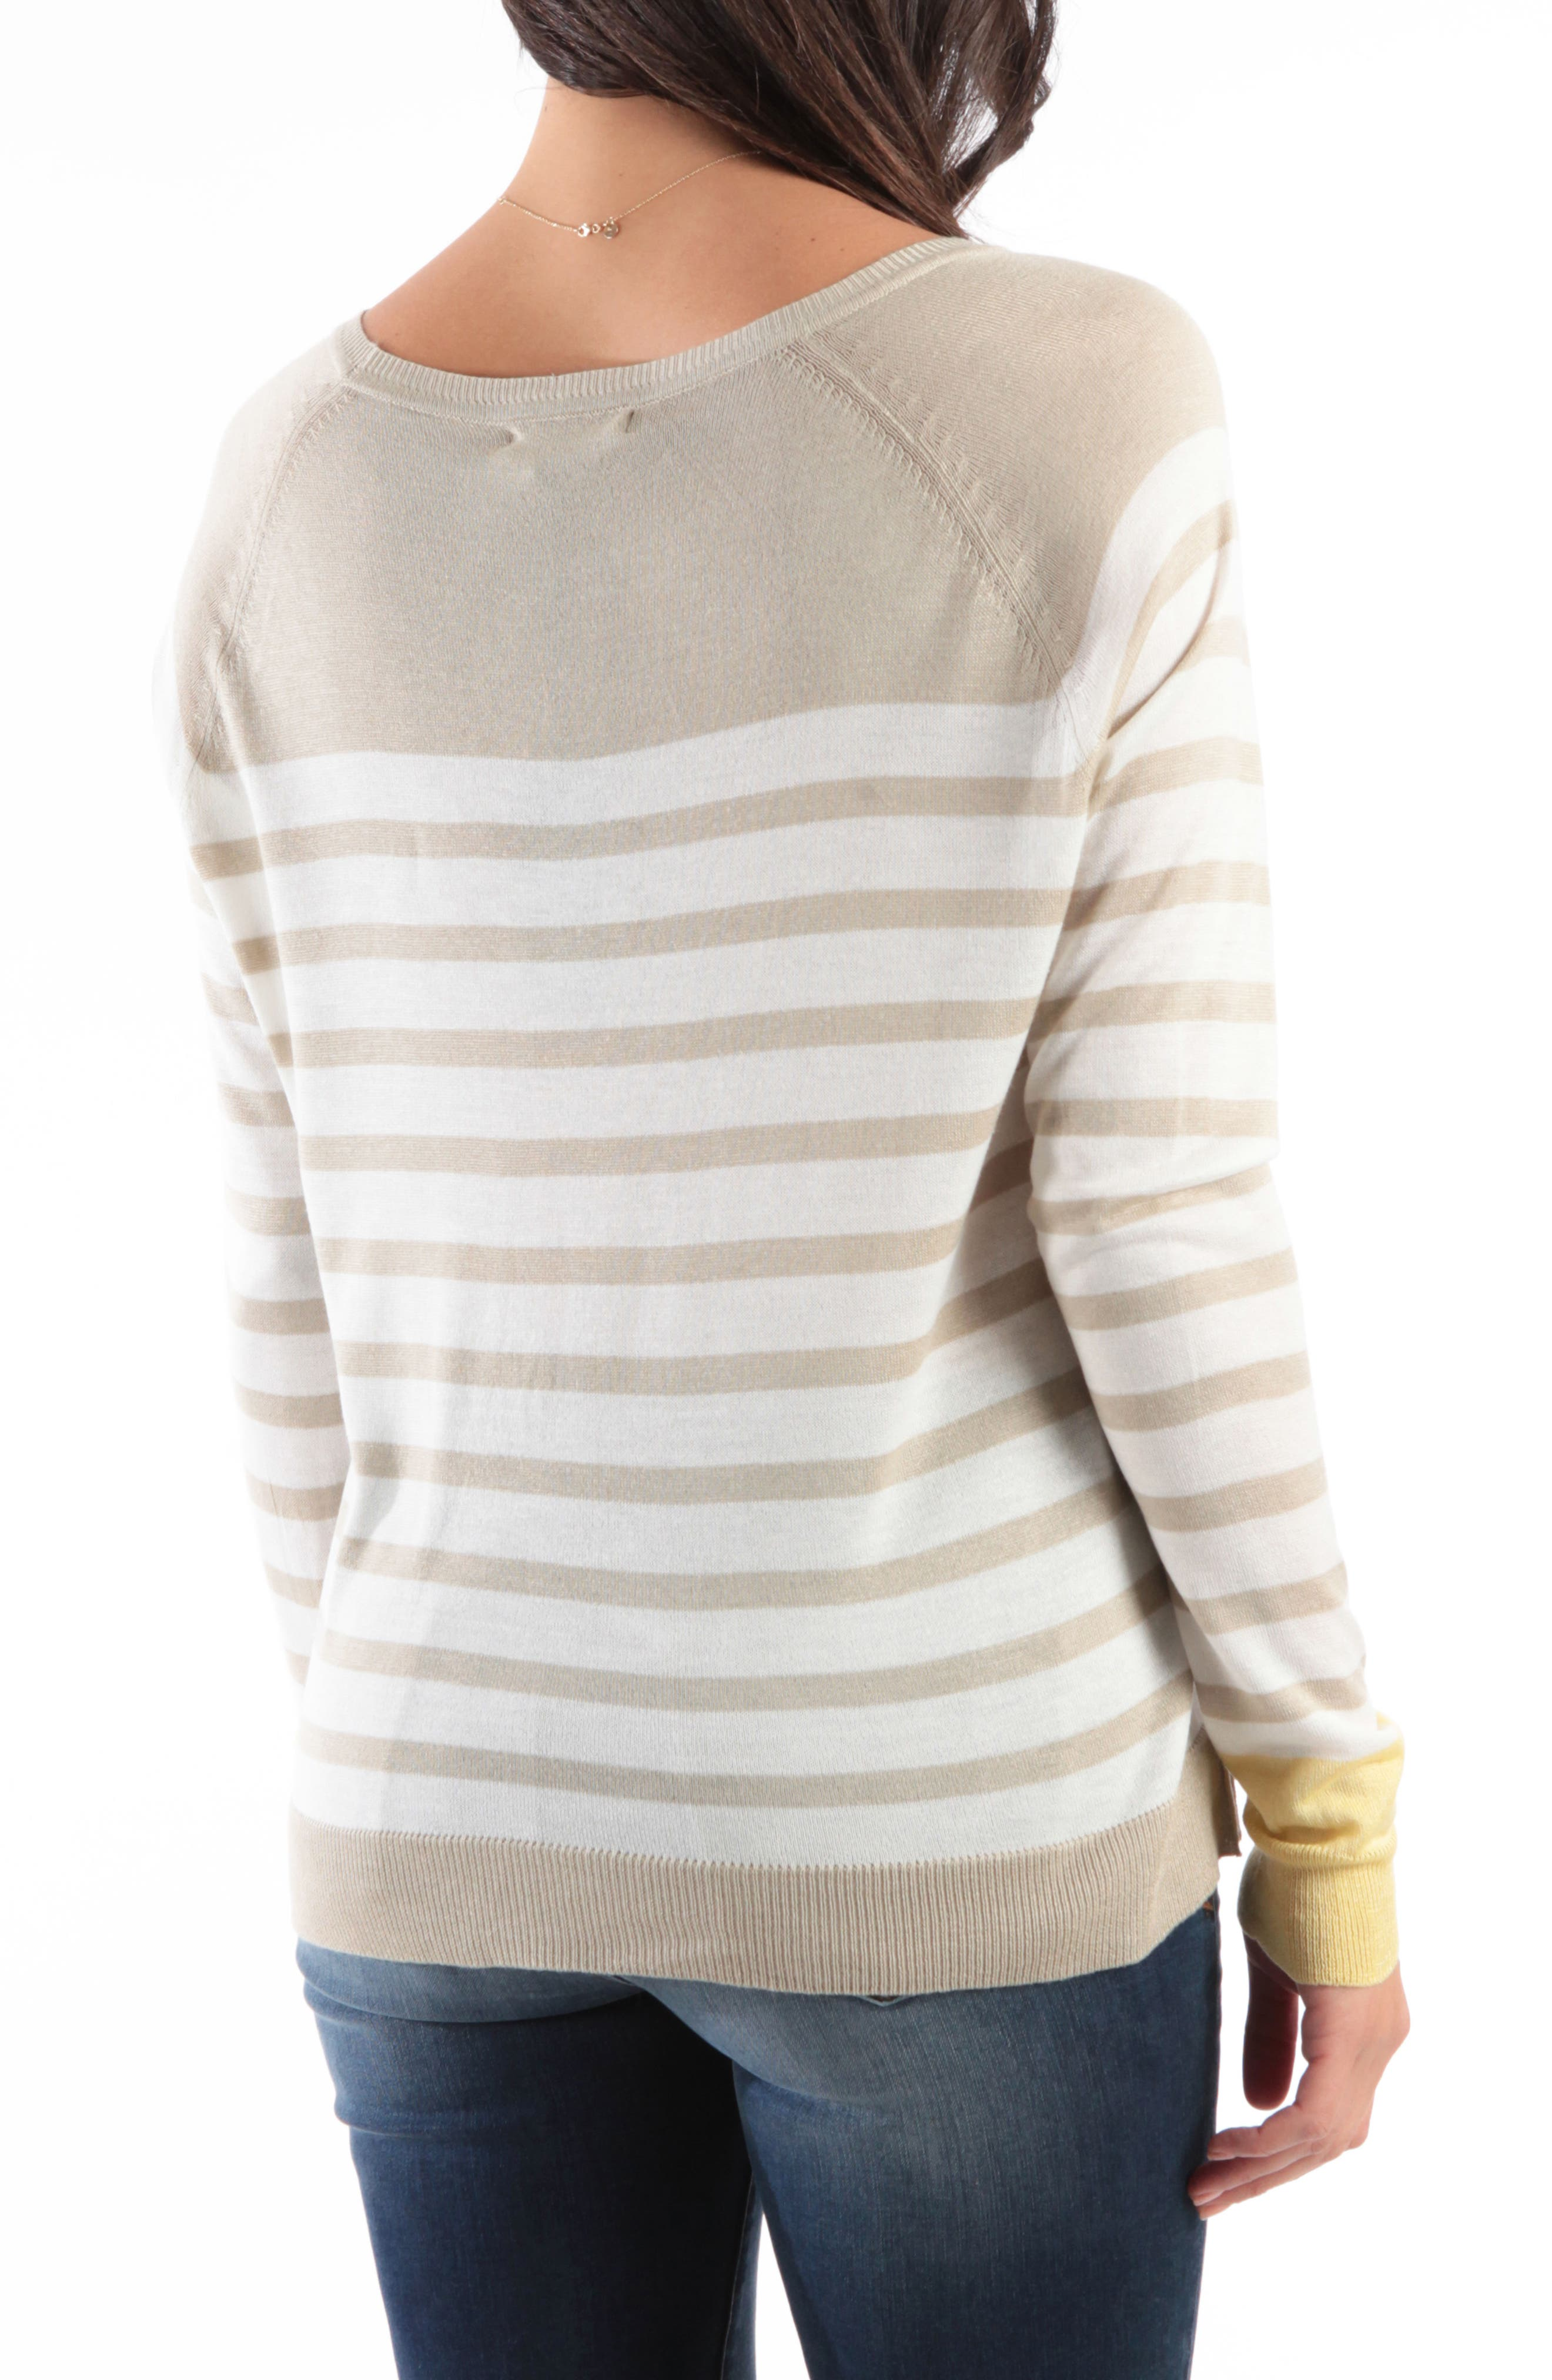 KUT FROM THE KLOTH,                             Bianka Stripe Sweater,                             Alternate thumbnail 2, color,                             OATMEAL/ OFF WHITE